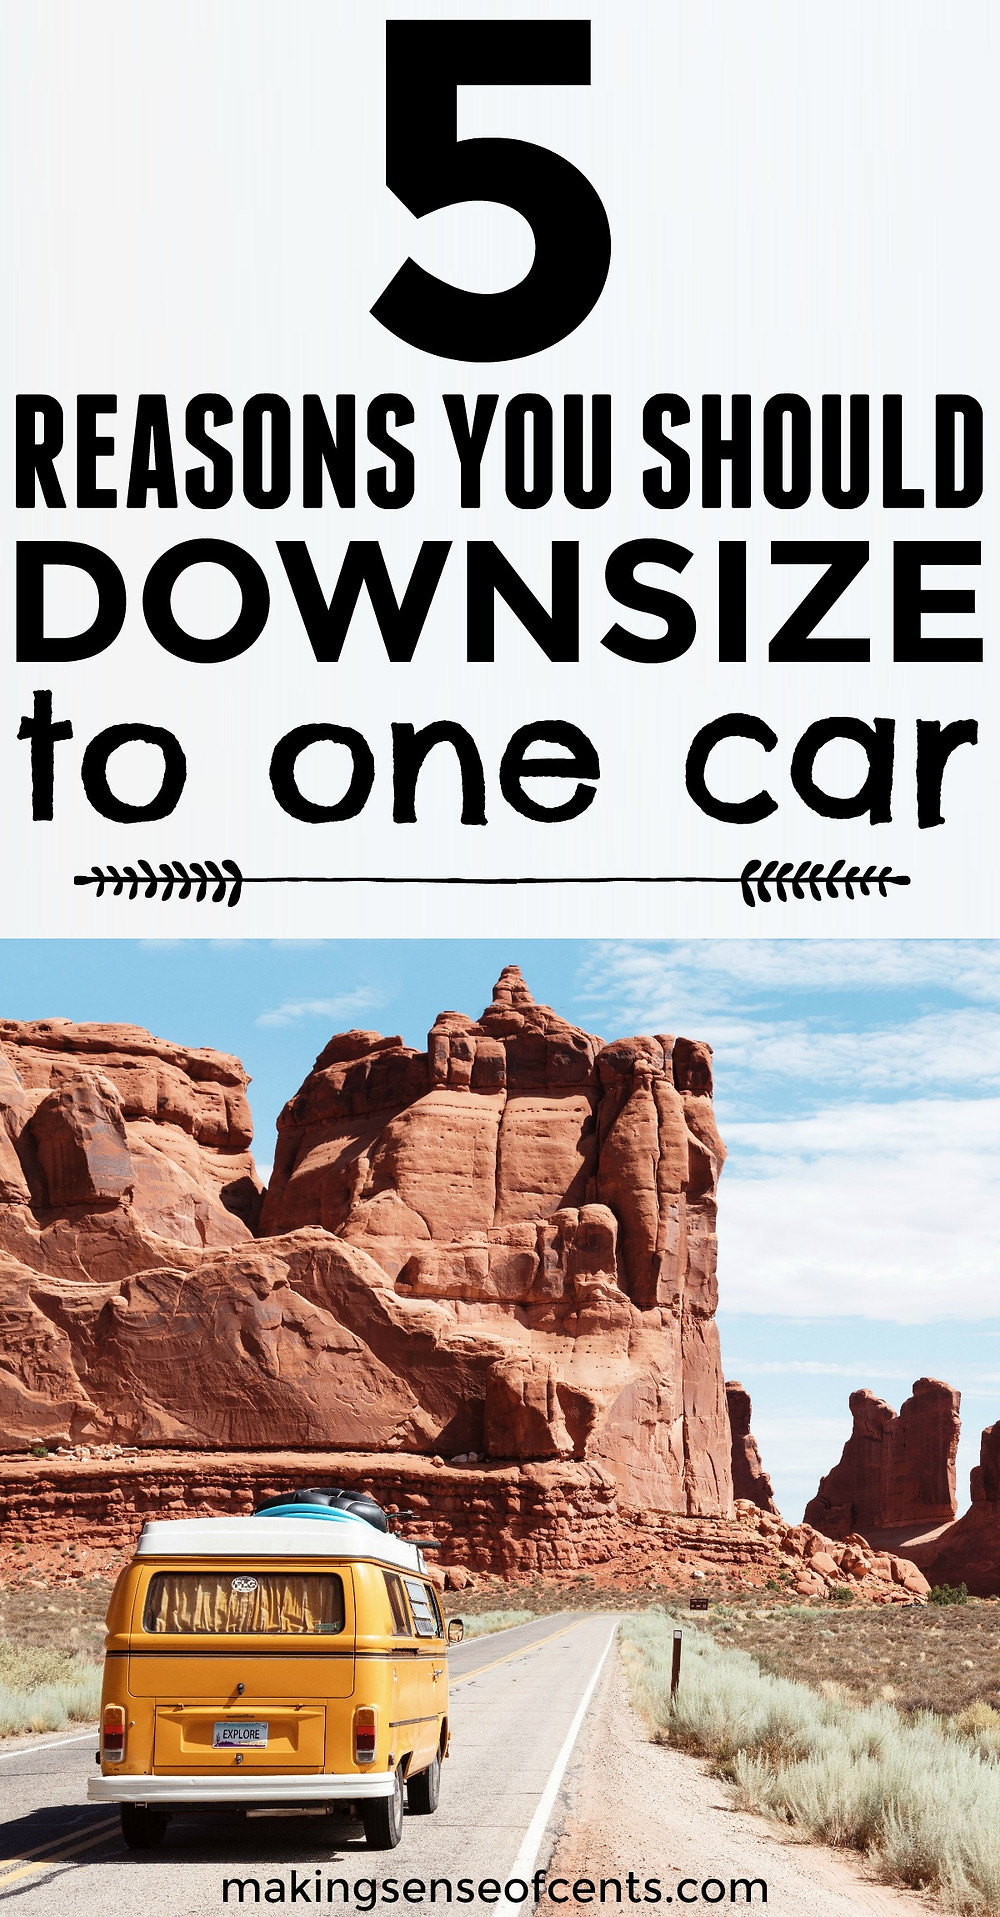 Check out this list of reasons you should downsize to one car.